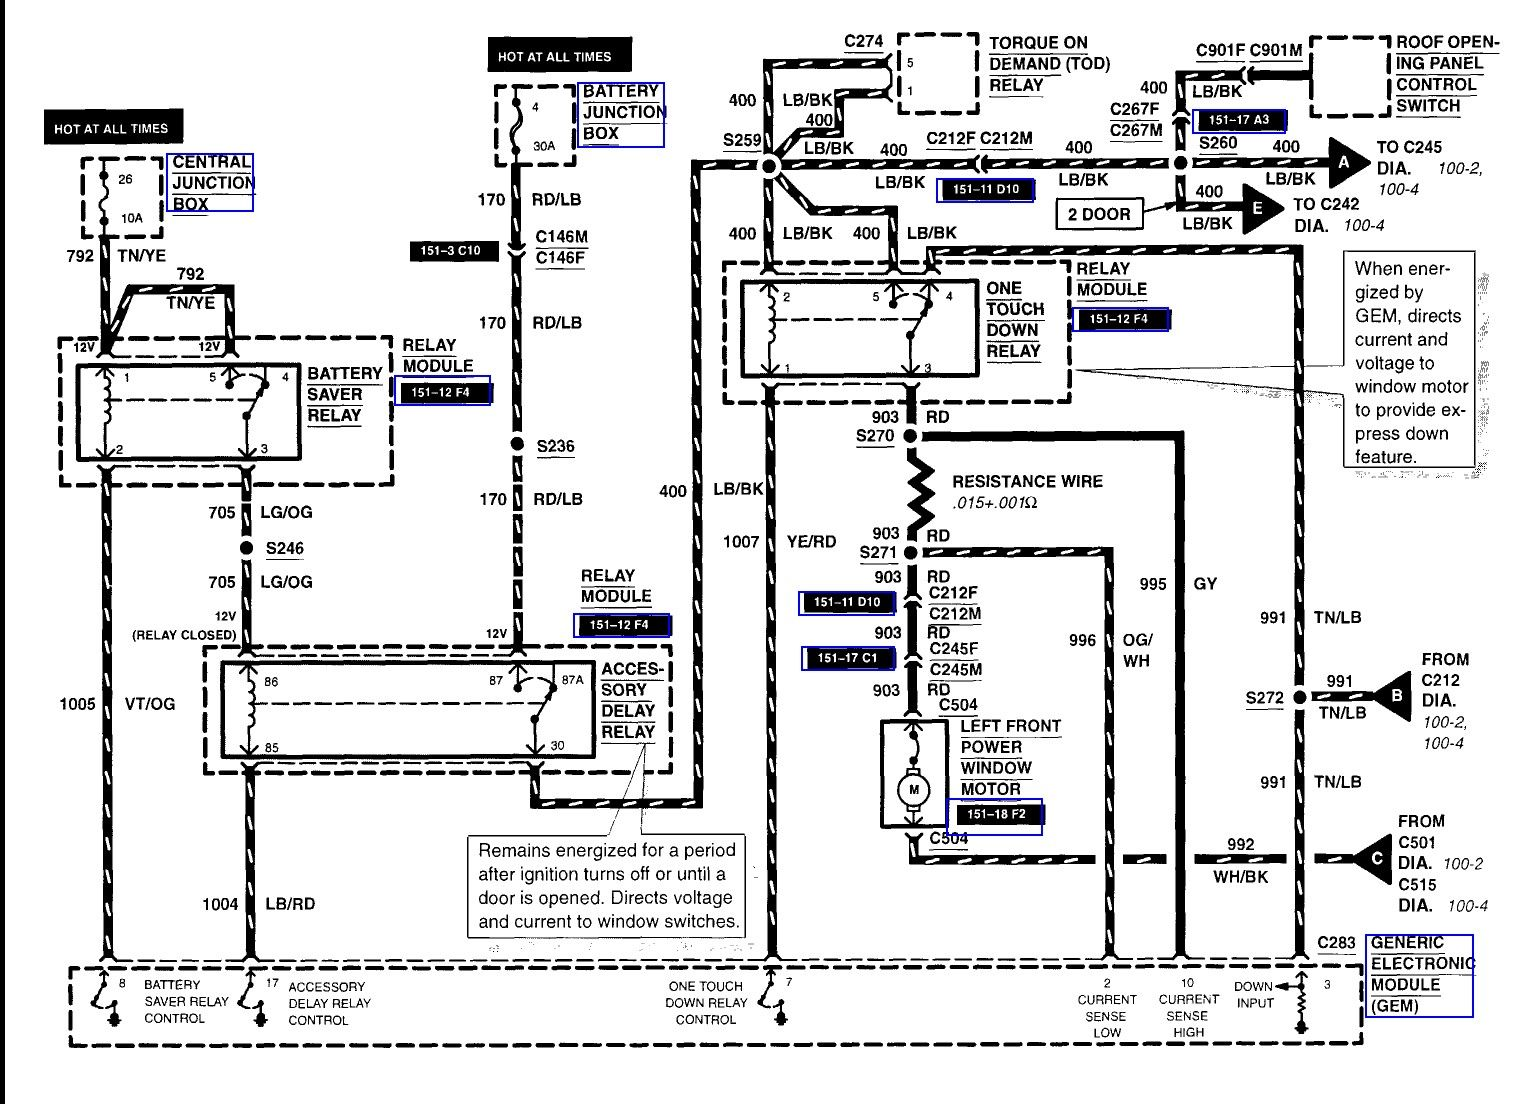 2001 F150 Wiring Diagram Collection In 2020 Ford Explorer Trailer Wiring Diagram Diagram